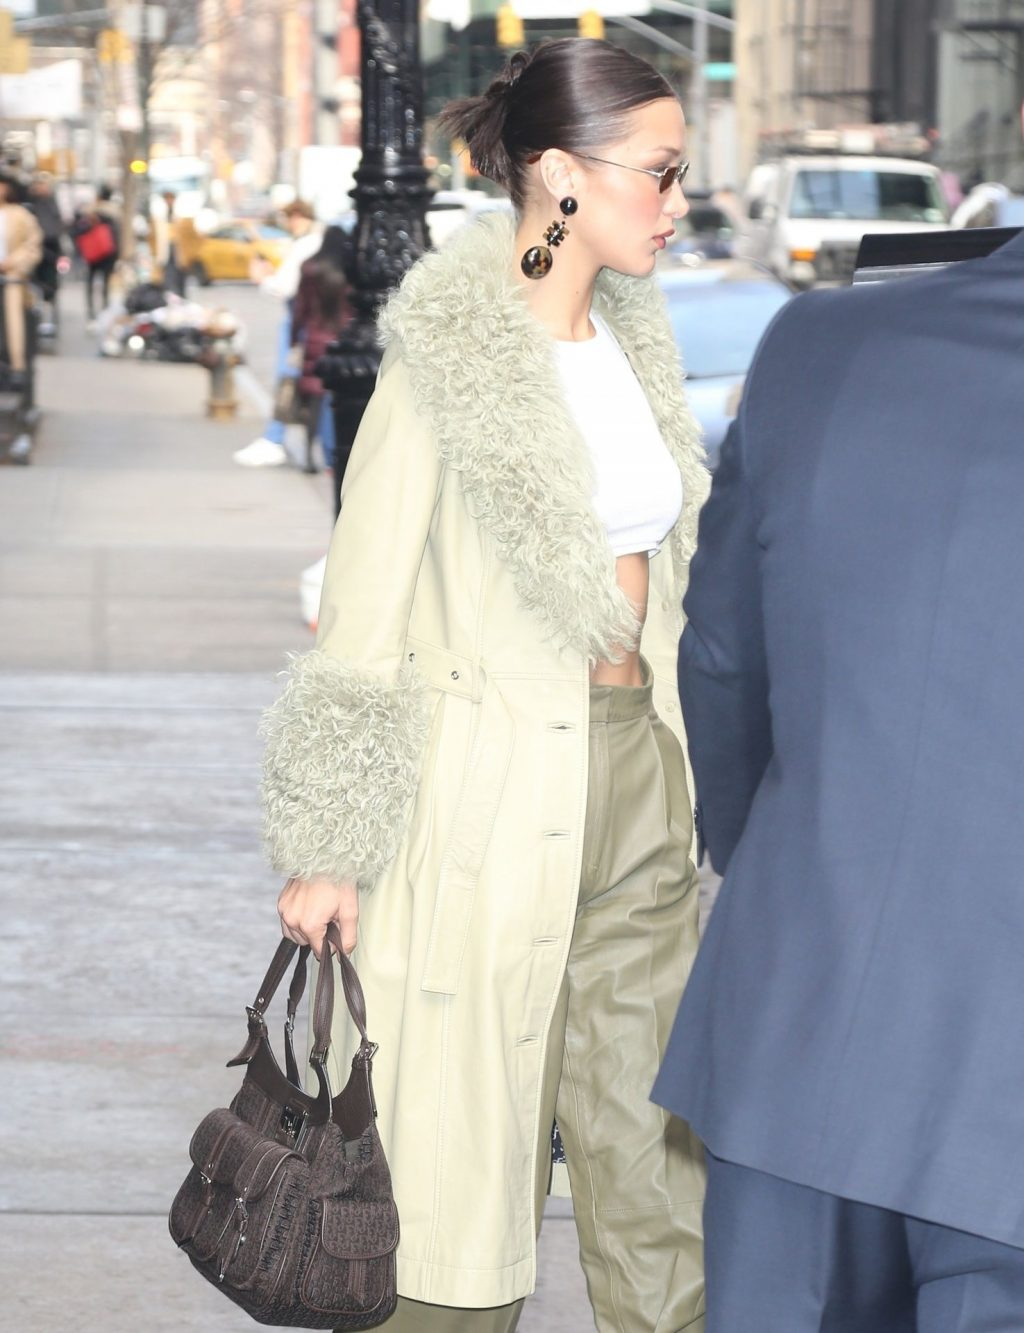 Bella Hadid See through The Fappening Blog 34 1024x1333 - Braless Bella Hadid Arrives at the Park Avenue Armory for the Marc Jacobs Fashion Show (59 Photos)